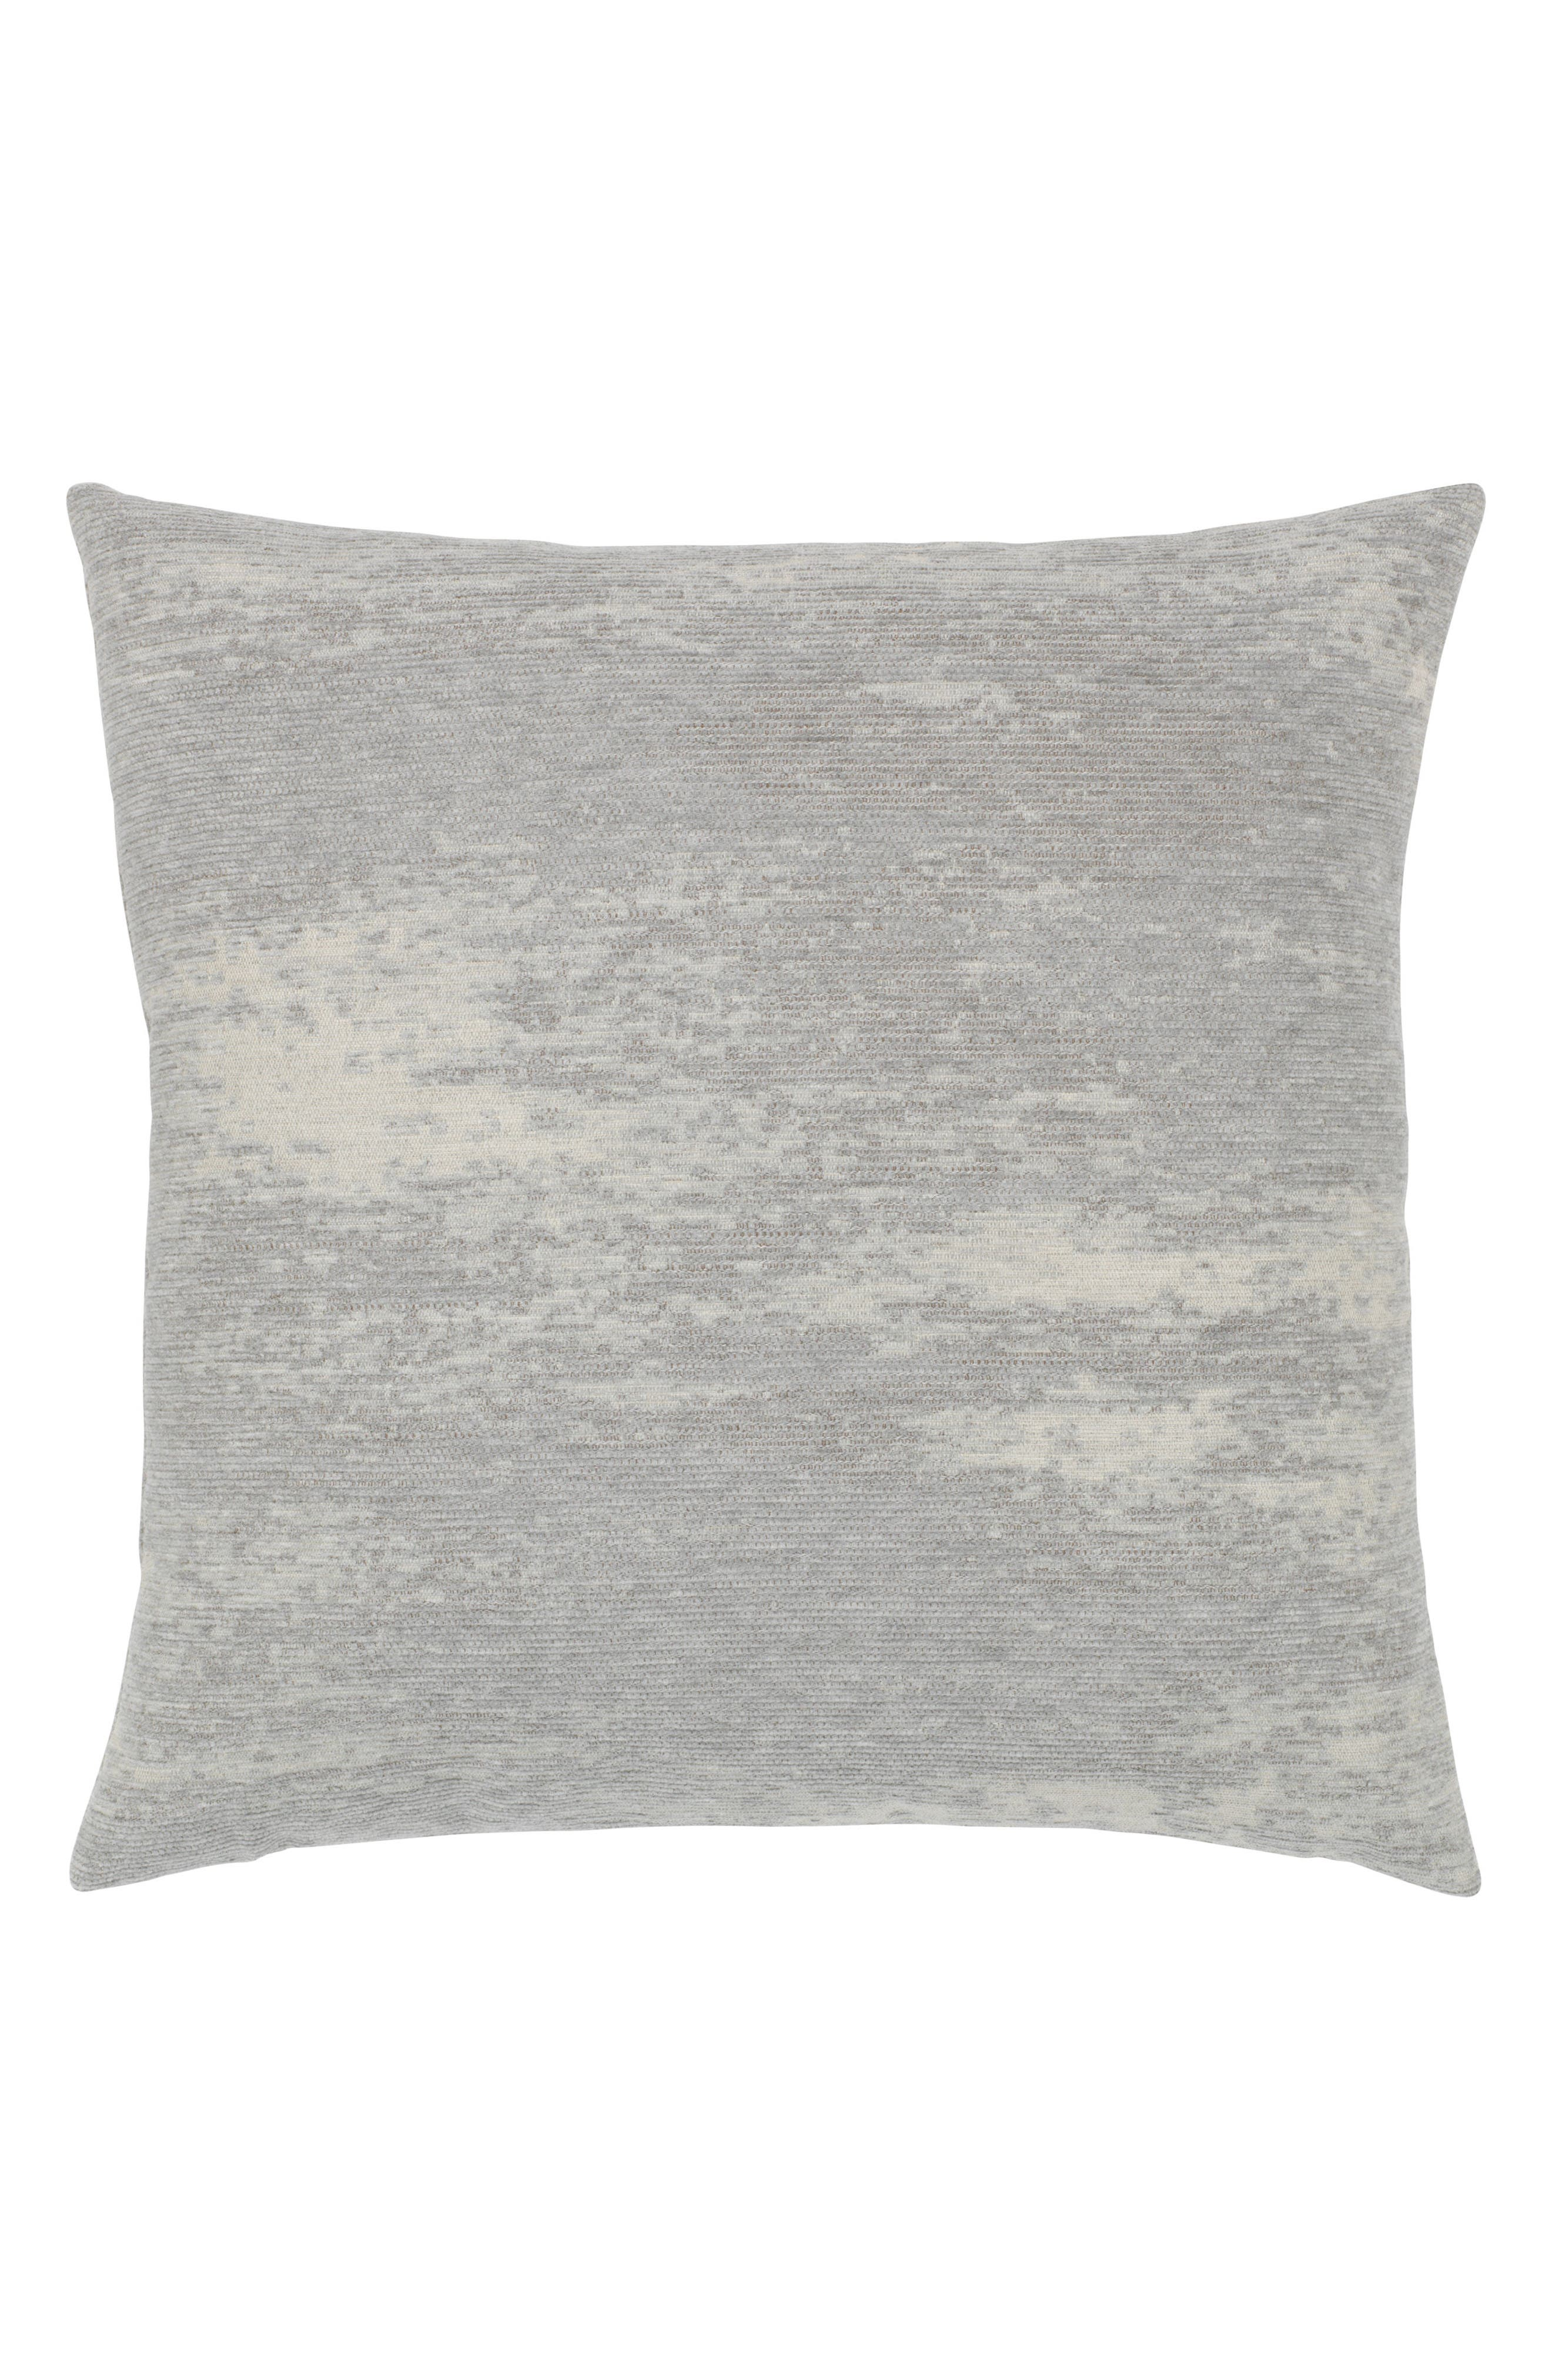 Distressed Granite Indoor/Outdoor Accent Pillow,                         Main,                         color, Grey